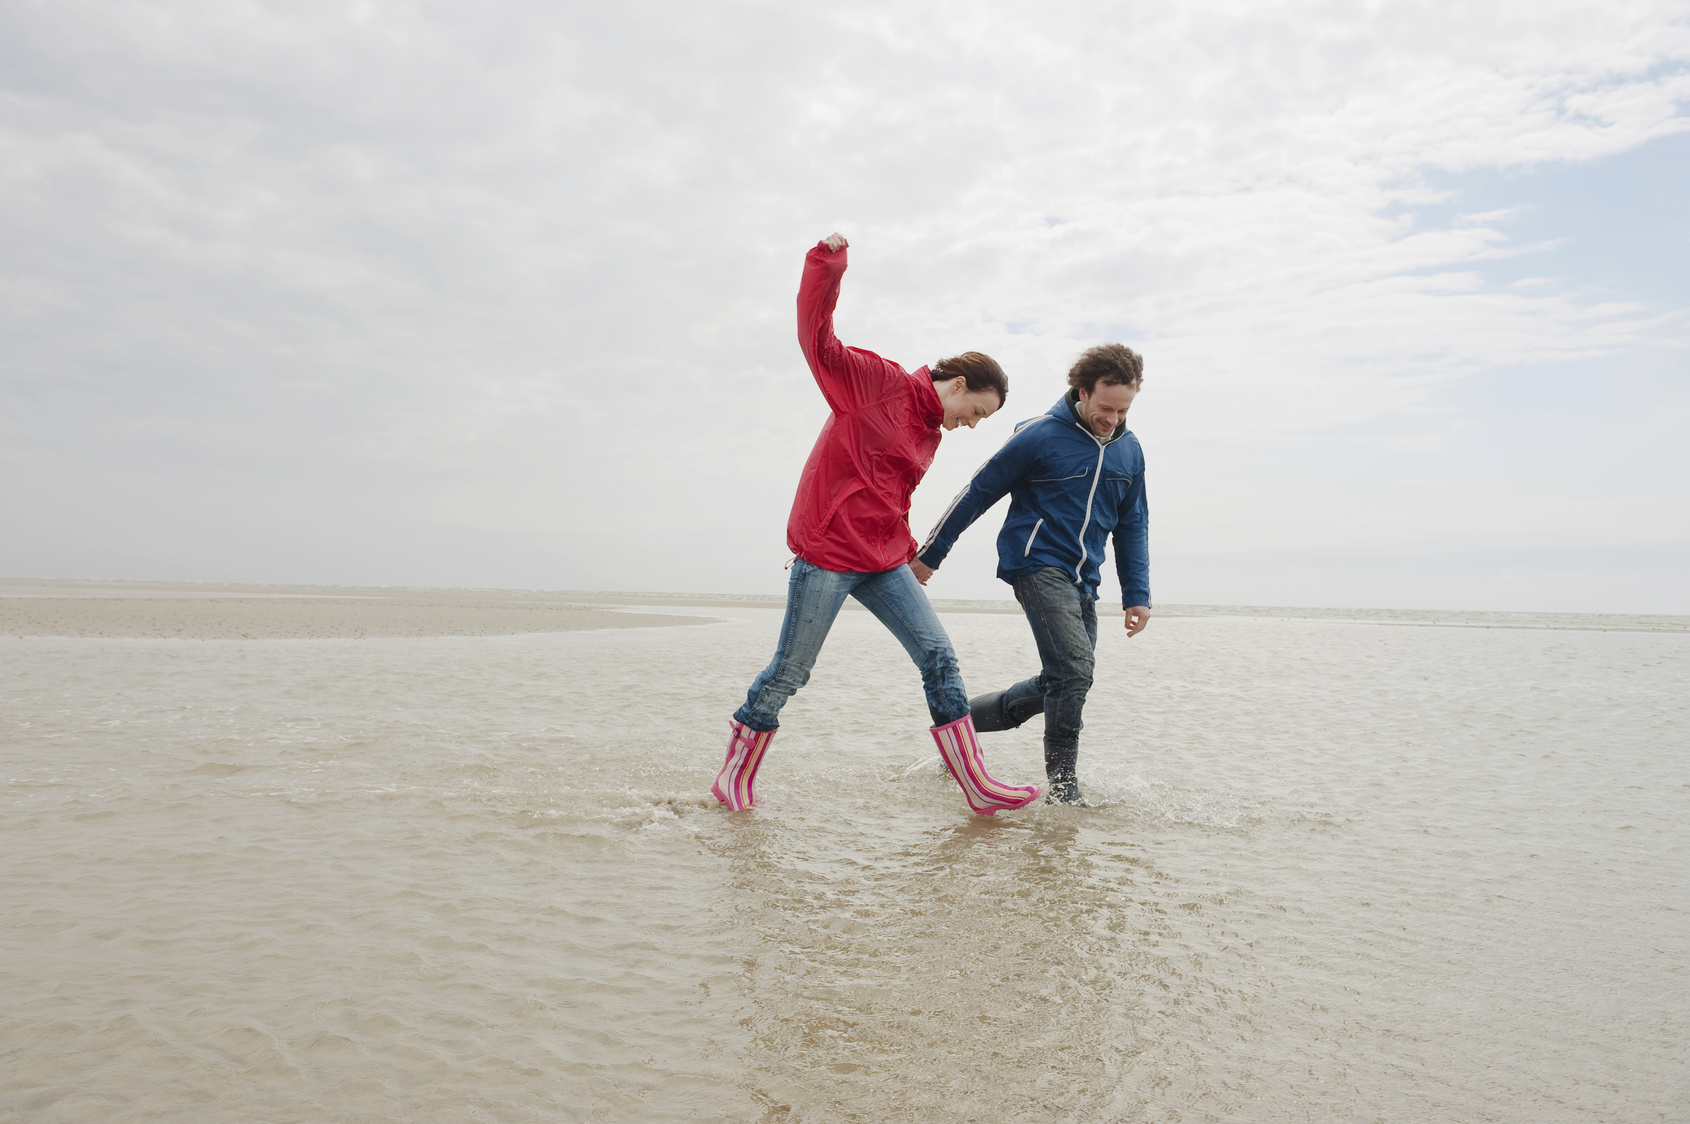 Germany, St. Peter-Ording, North Sea, Couple holding hands and walking on beach